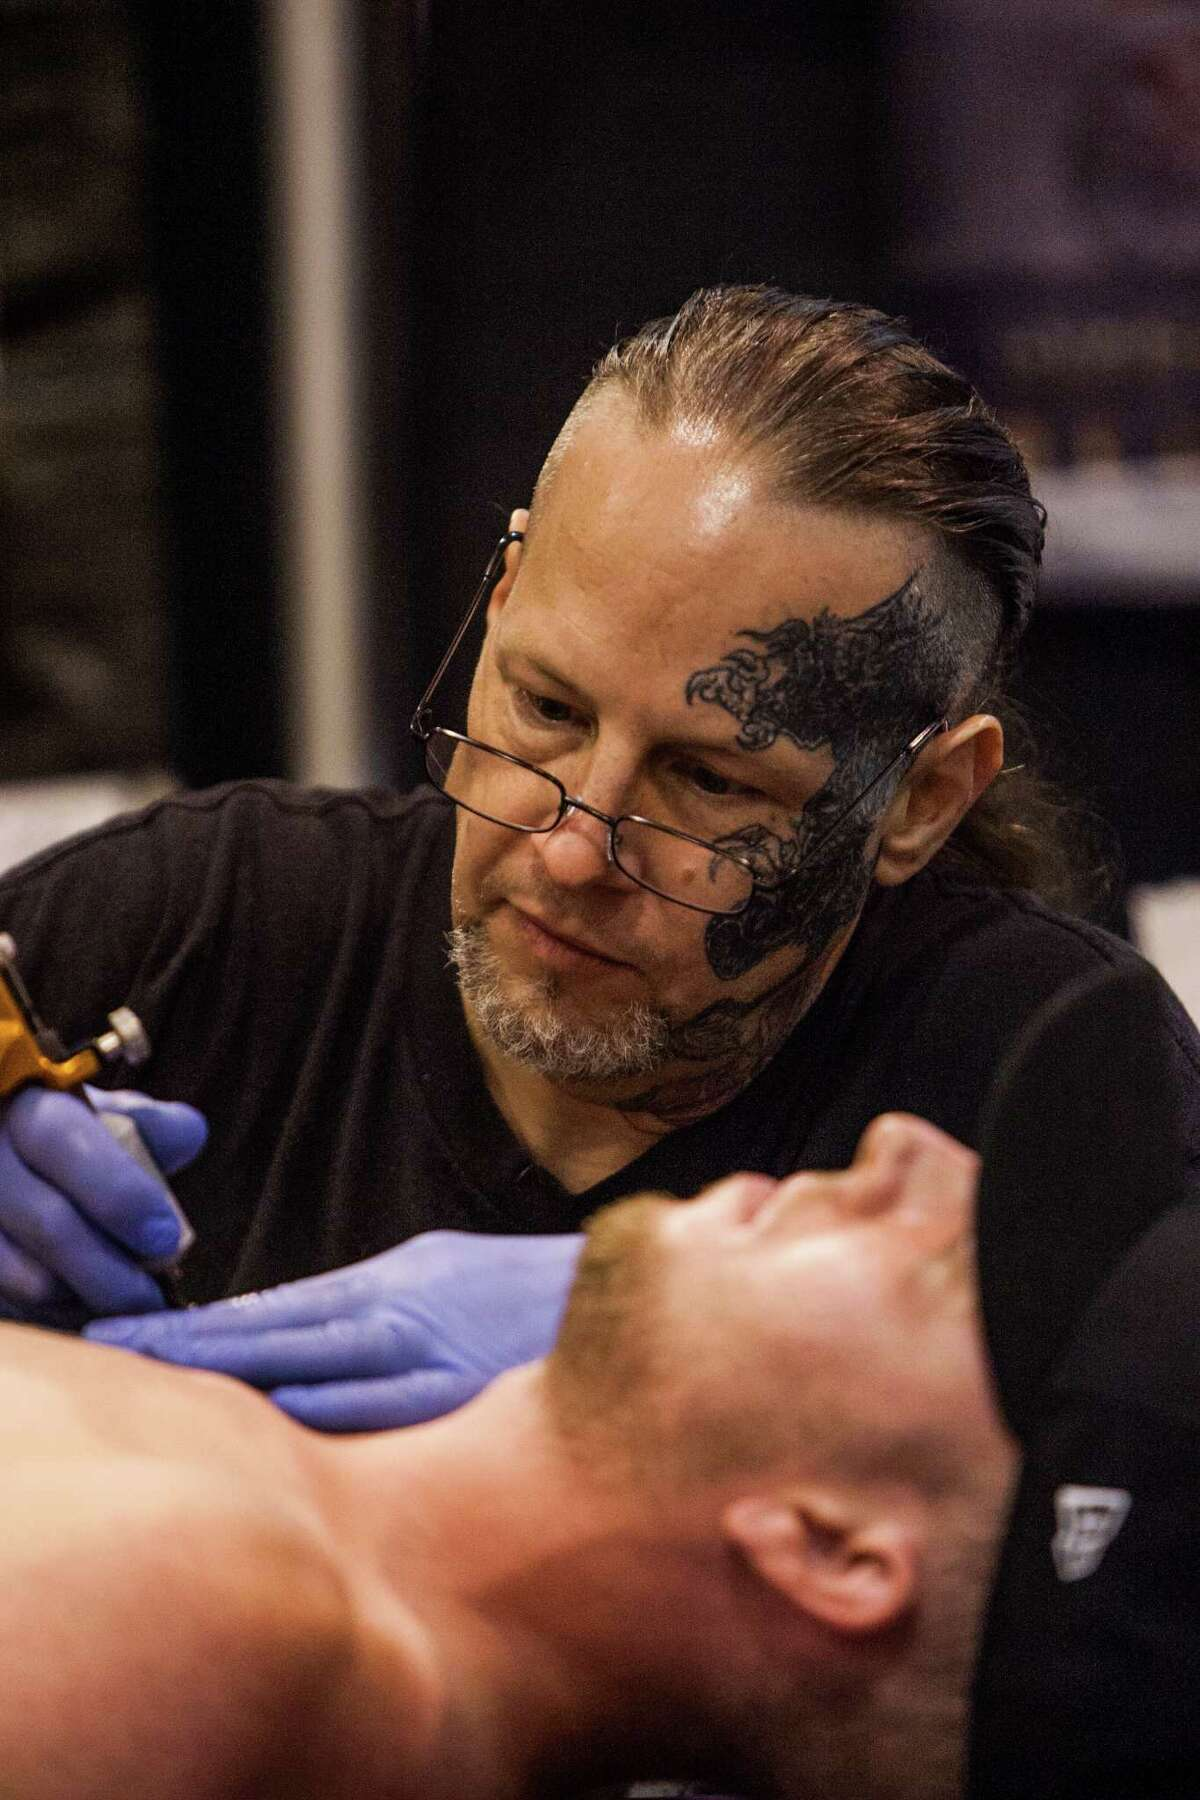 Edward Lee from Colorado Springs, CO tattoos a cutomer during the Body Art Expo at the Reliant Center Saturday September 7, 2013.